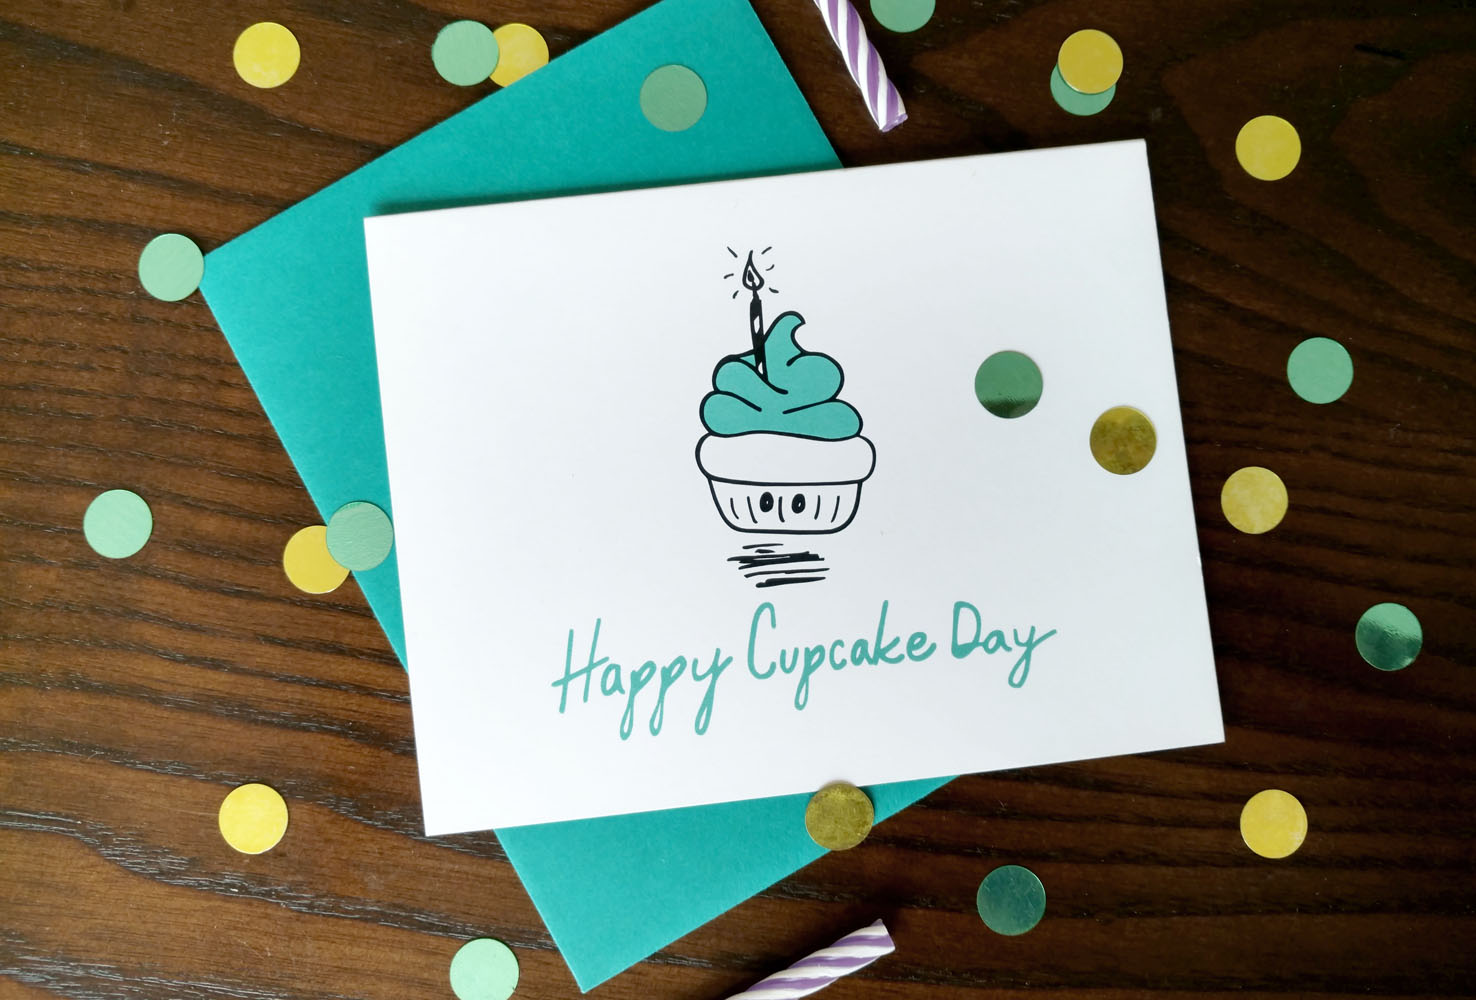 Meekly-Yours-Hand-Lettered-Illustrated-Happy-Cupcake-Day-Card.jpg